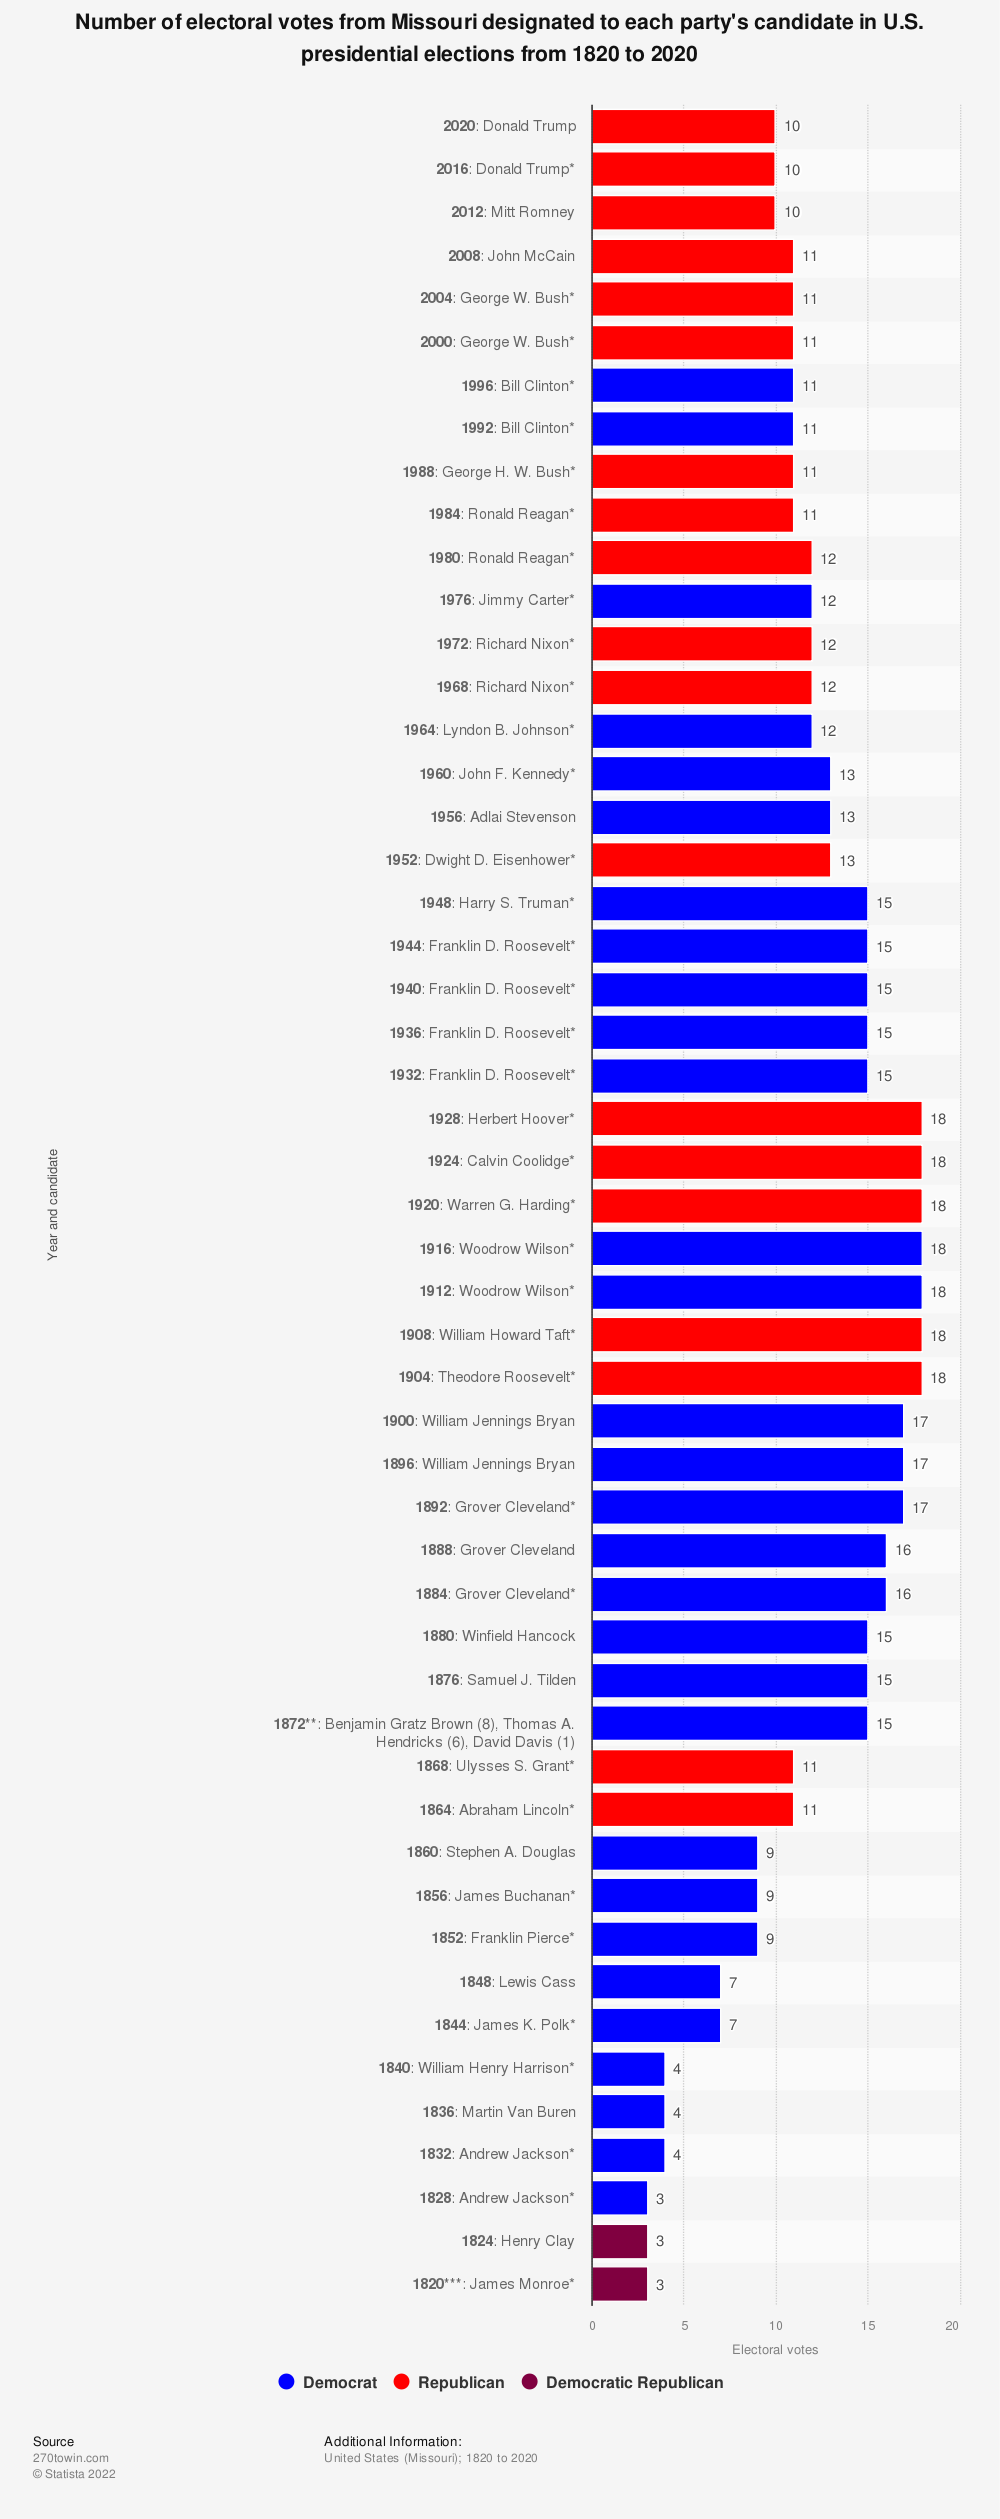 Statistic: Number of electoral votes from Missouri designated to each party's candidate in U.S. presidential elections from 1820 to 2020 | Statista